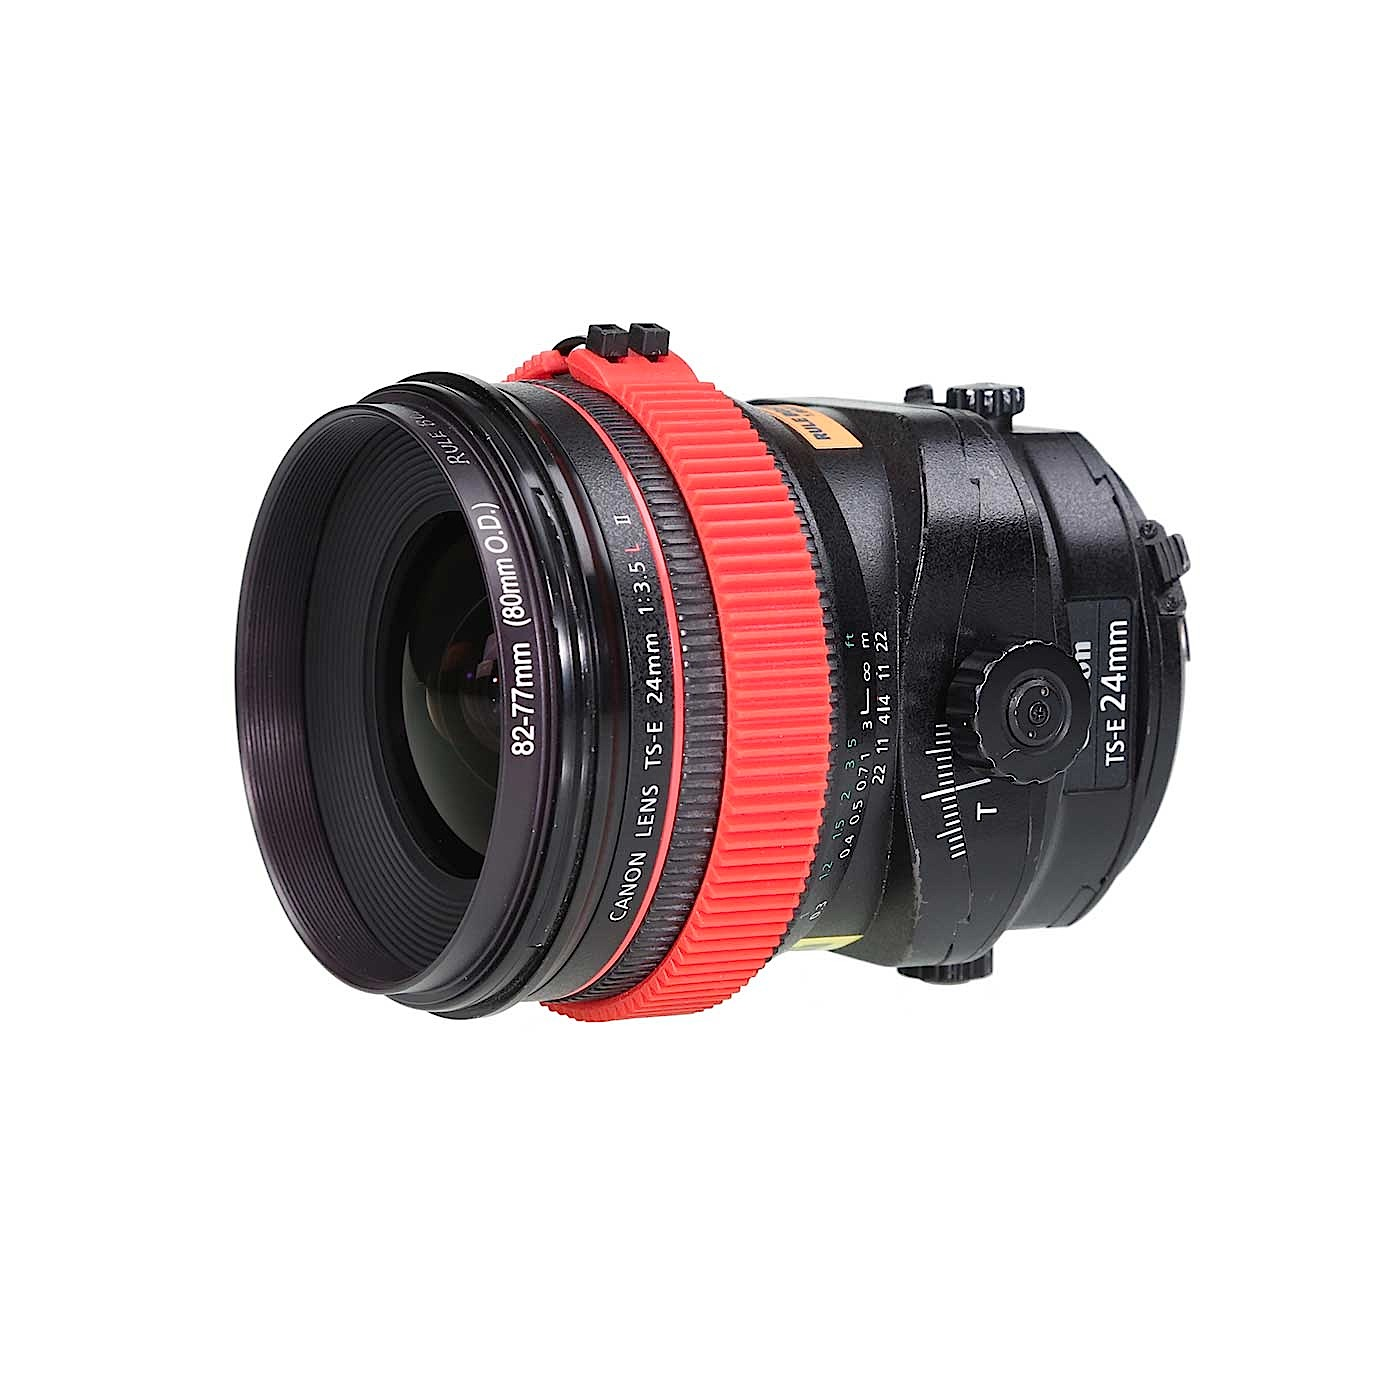 Canon EF 24mm Tilt Shift Prime Lens